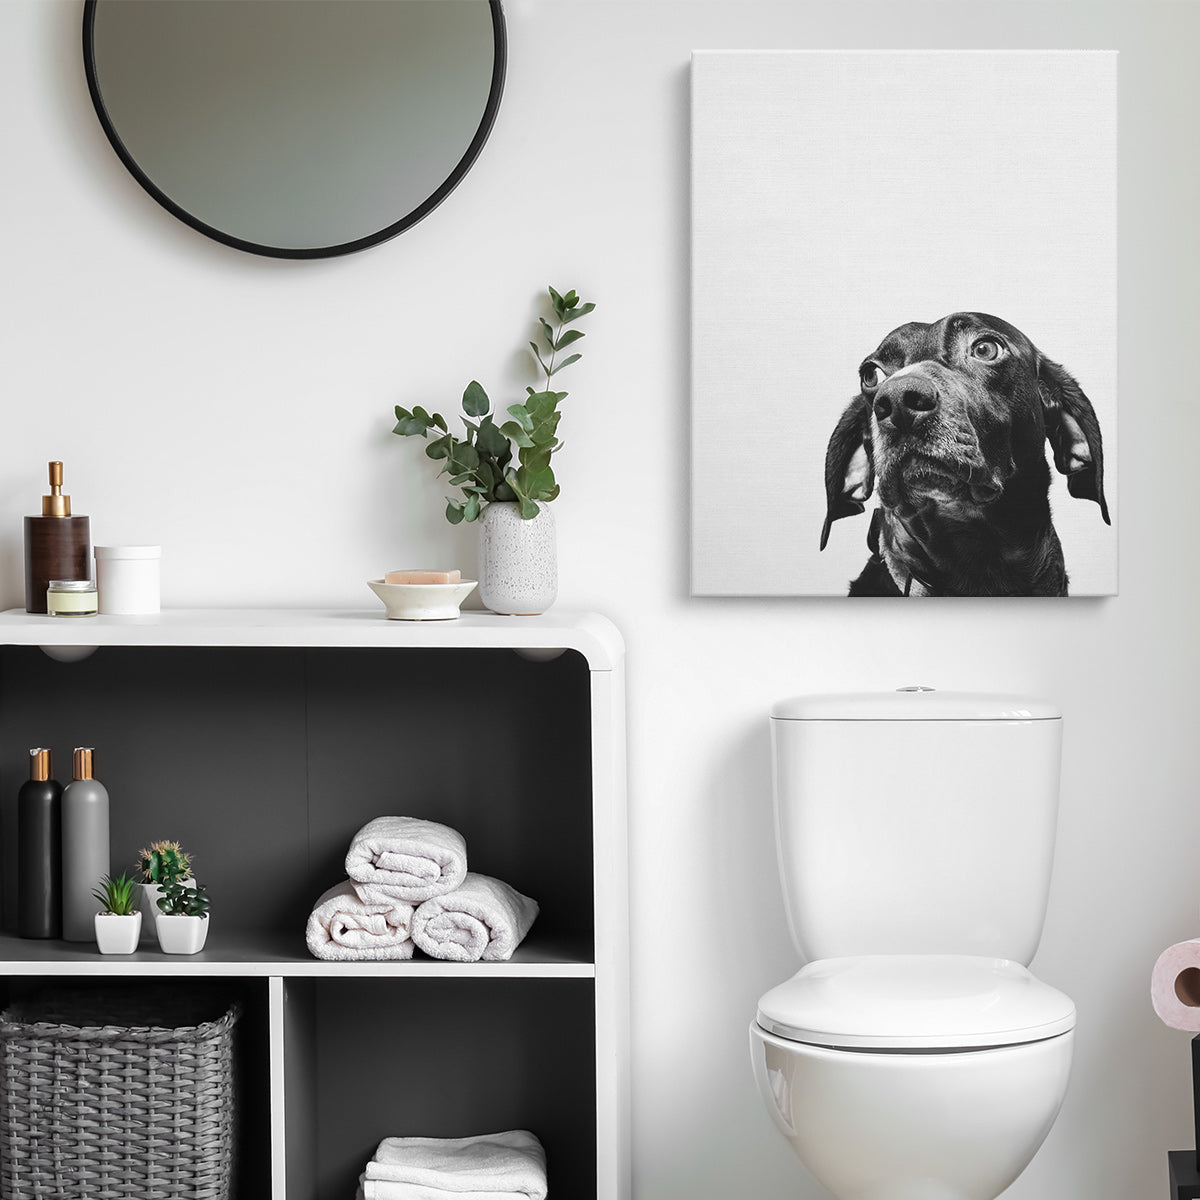 Photo of Dog Printed on Canvas and Hanging in Bathroom Above Toilet